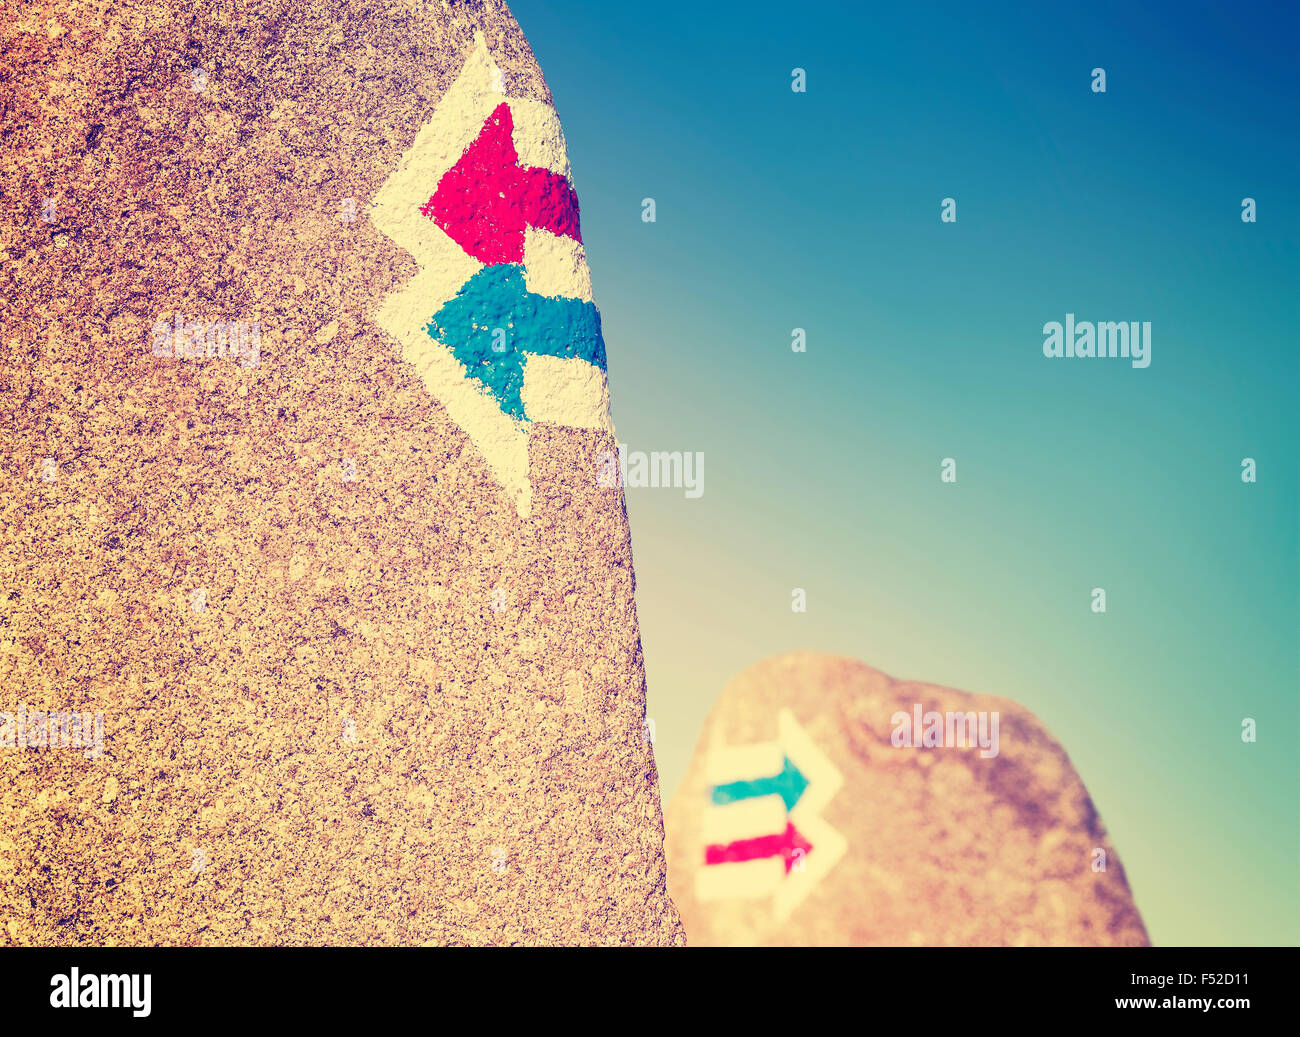 Vintage toned trail signs painted on rock, choice or dilemma concept. - Stock Image